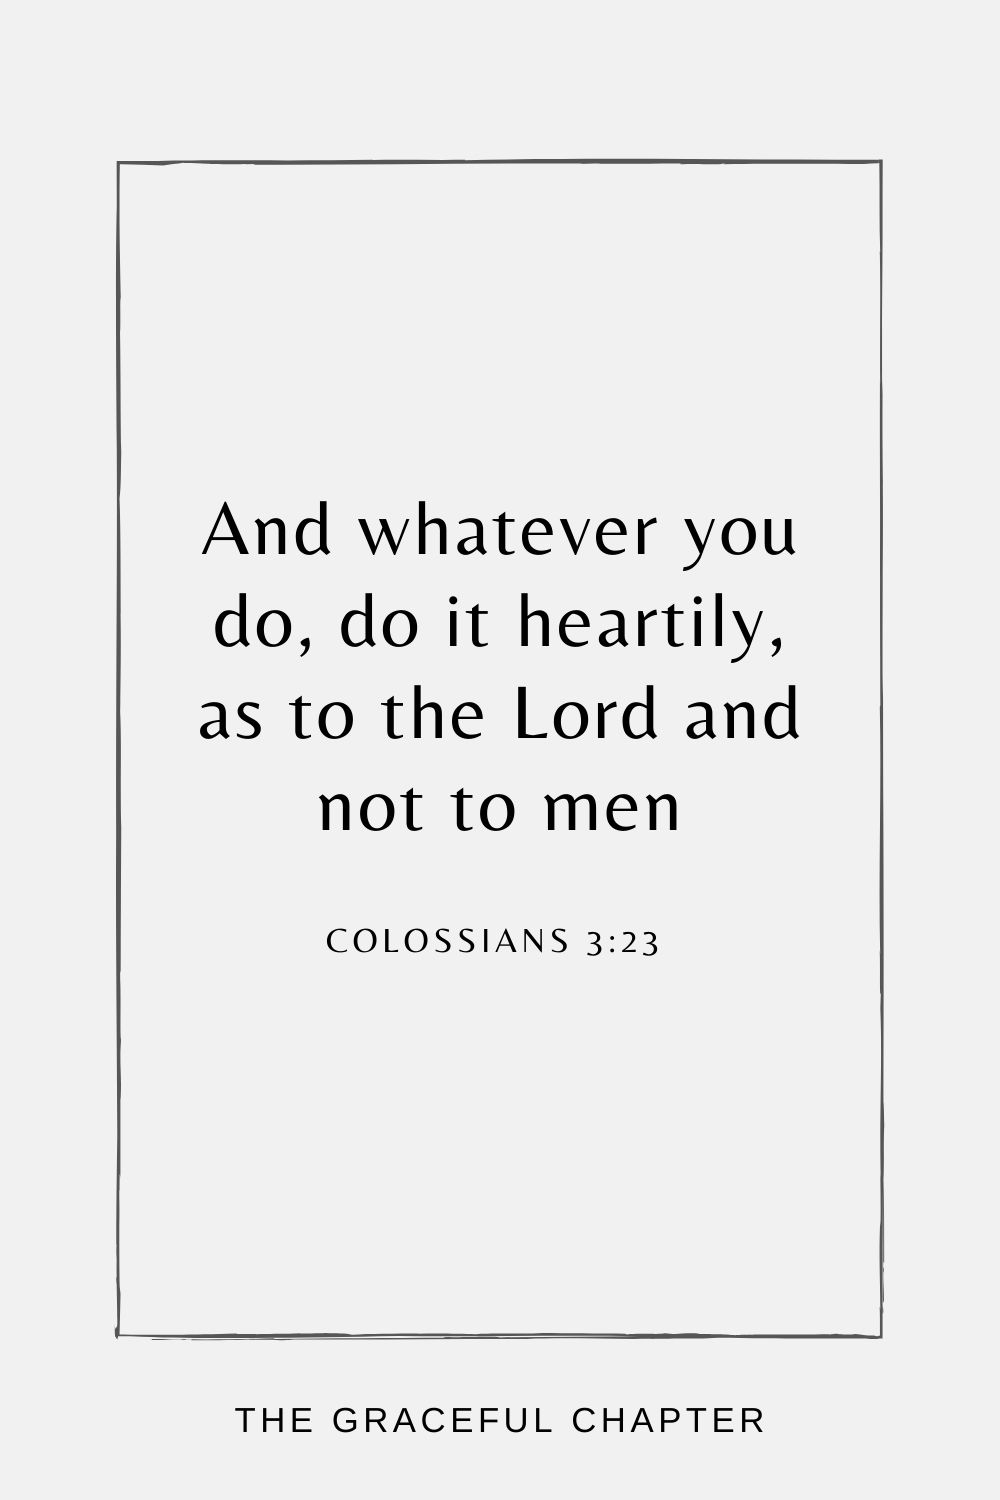 And whatever you do, do it heartily, as to the Lord and not to men, Colossians 3:23